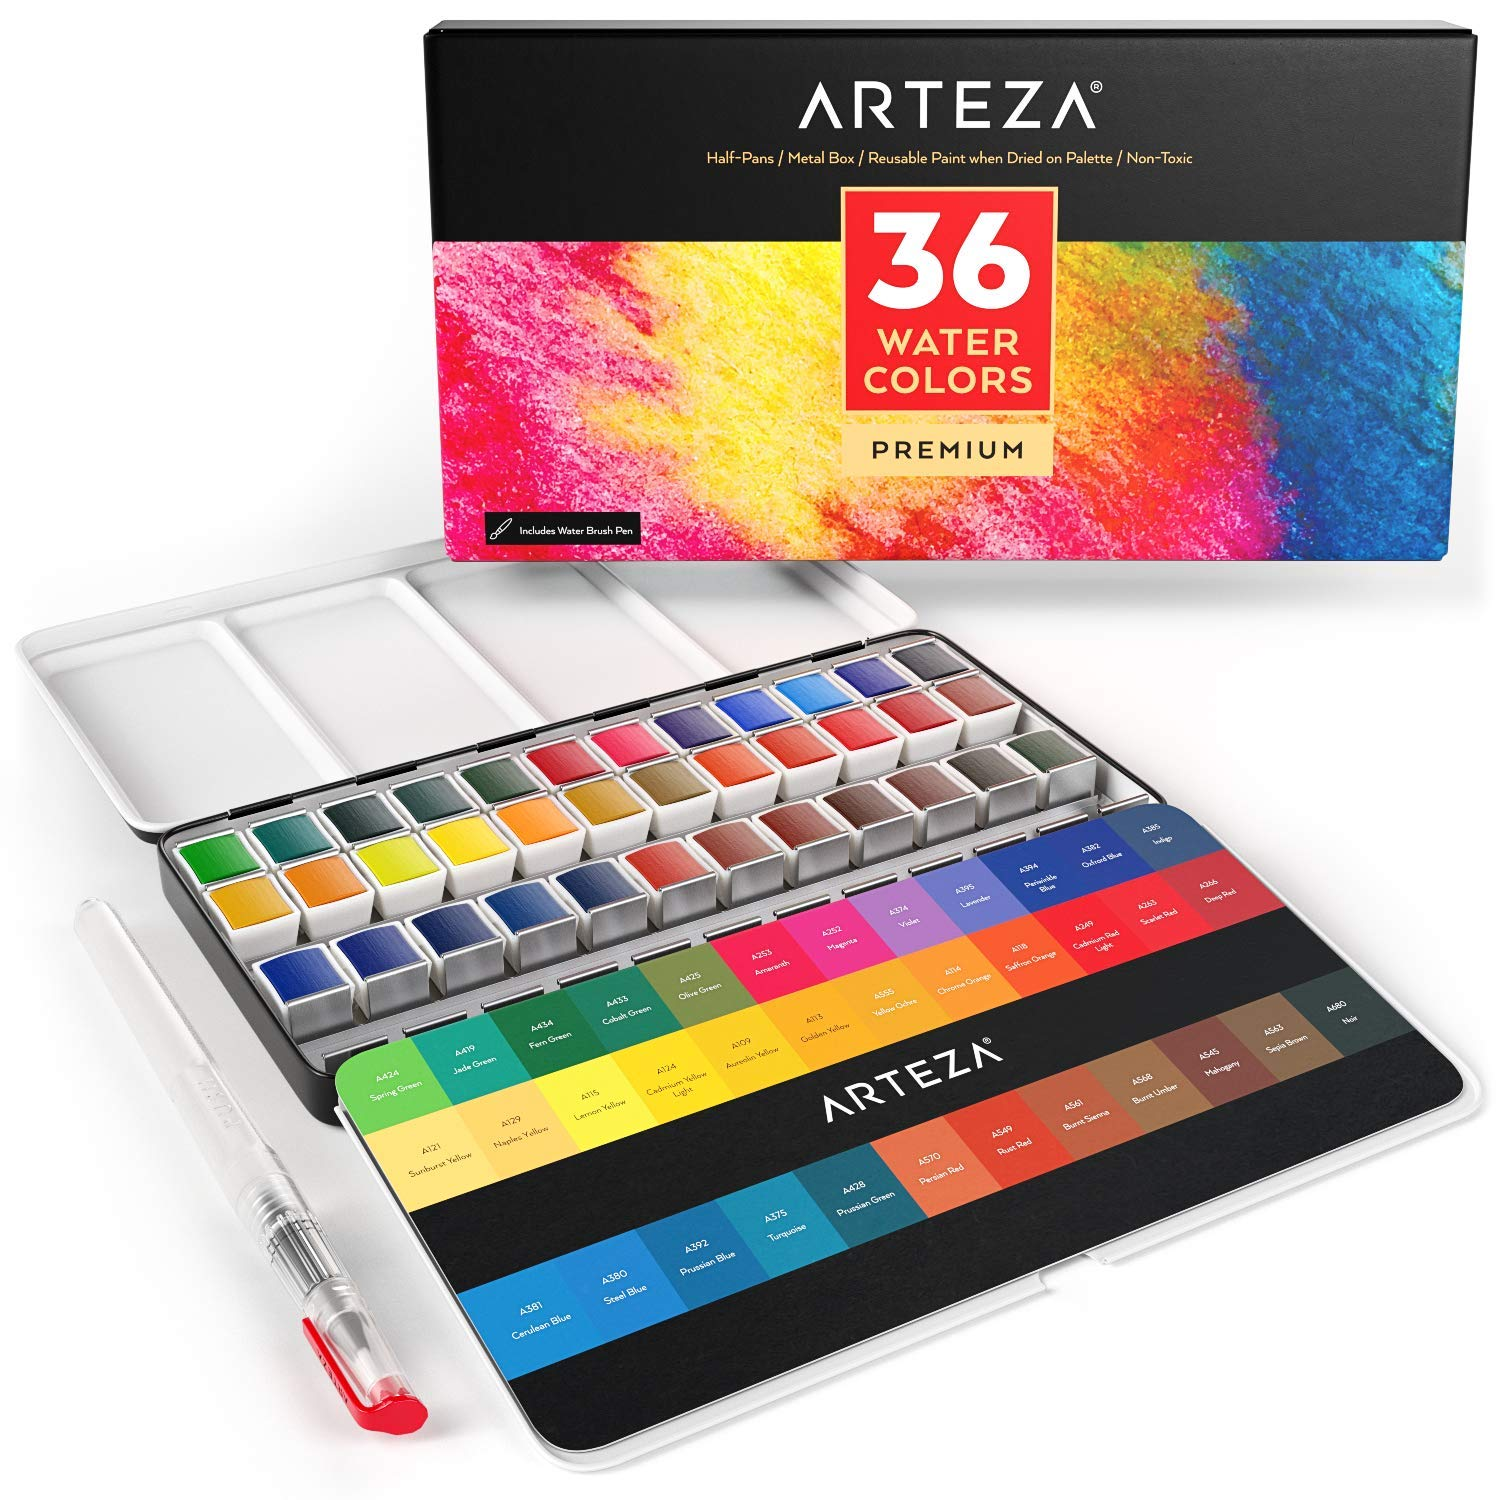 ARTEZA Watercolor Paint, Set of 36 Assorted Vibrant Colors in Half Pans (in Tin Box) with Water Brush Pen for Artists, Art Painting, Ideal for Watercolor Techniques by ARTEZA